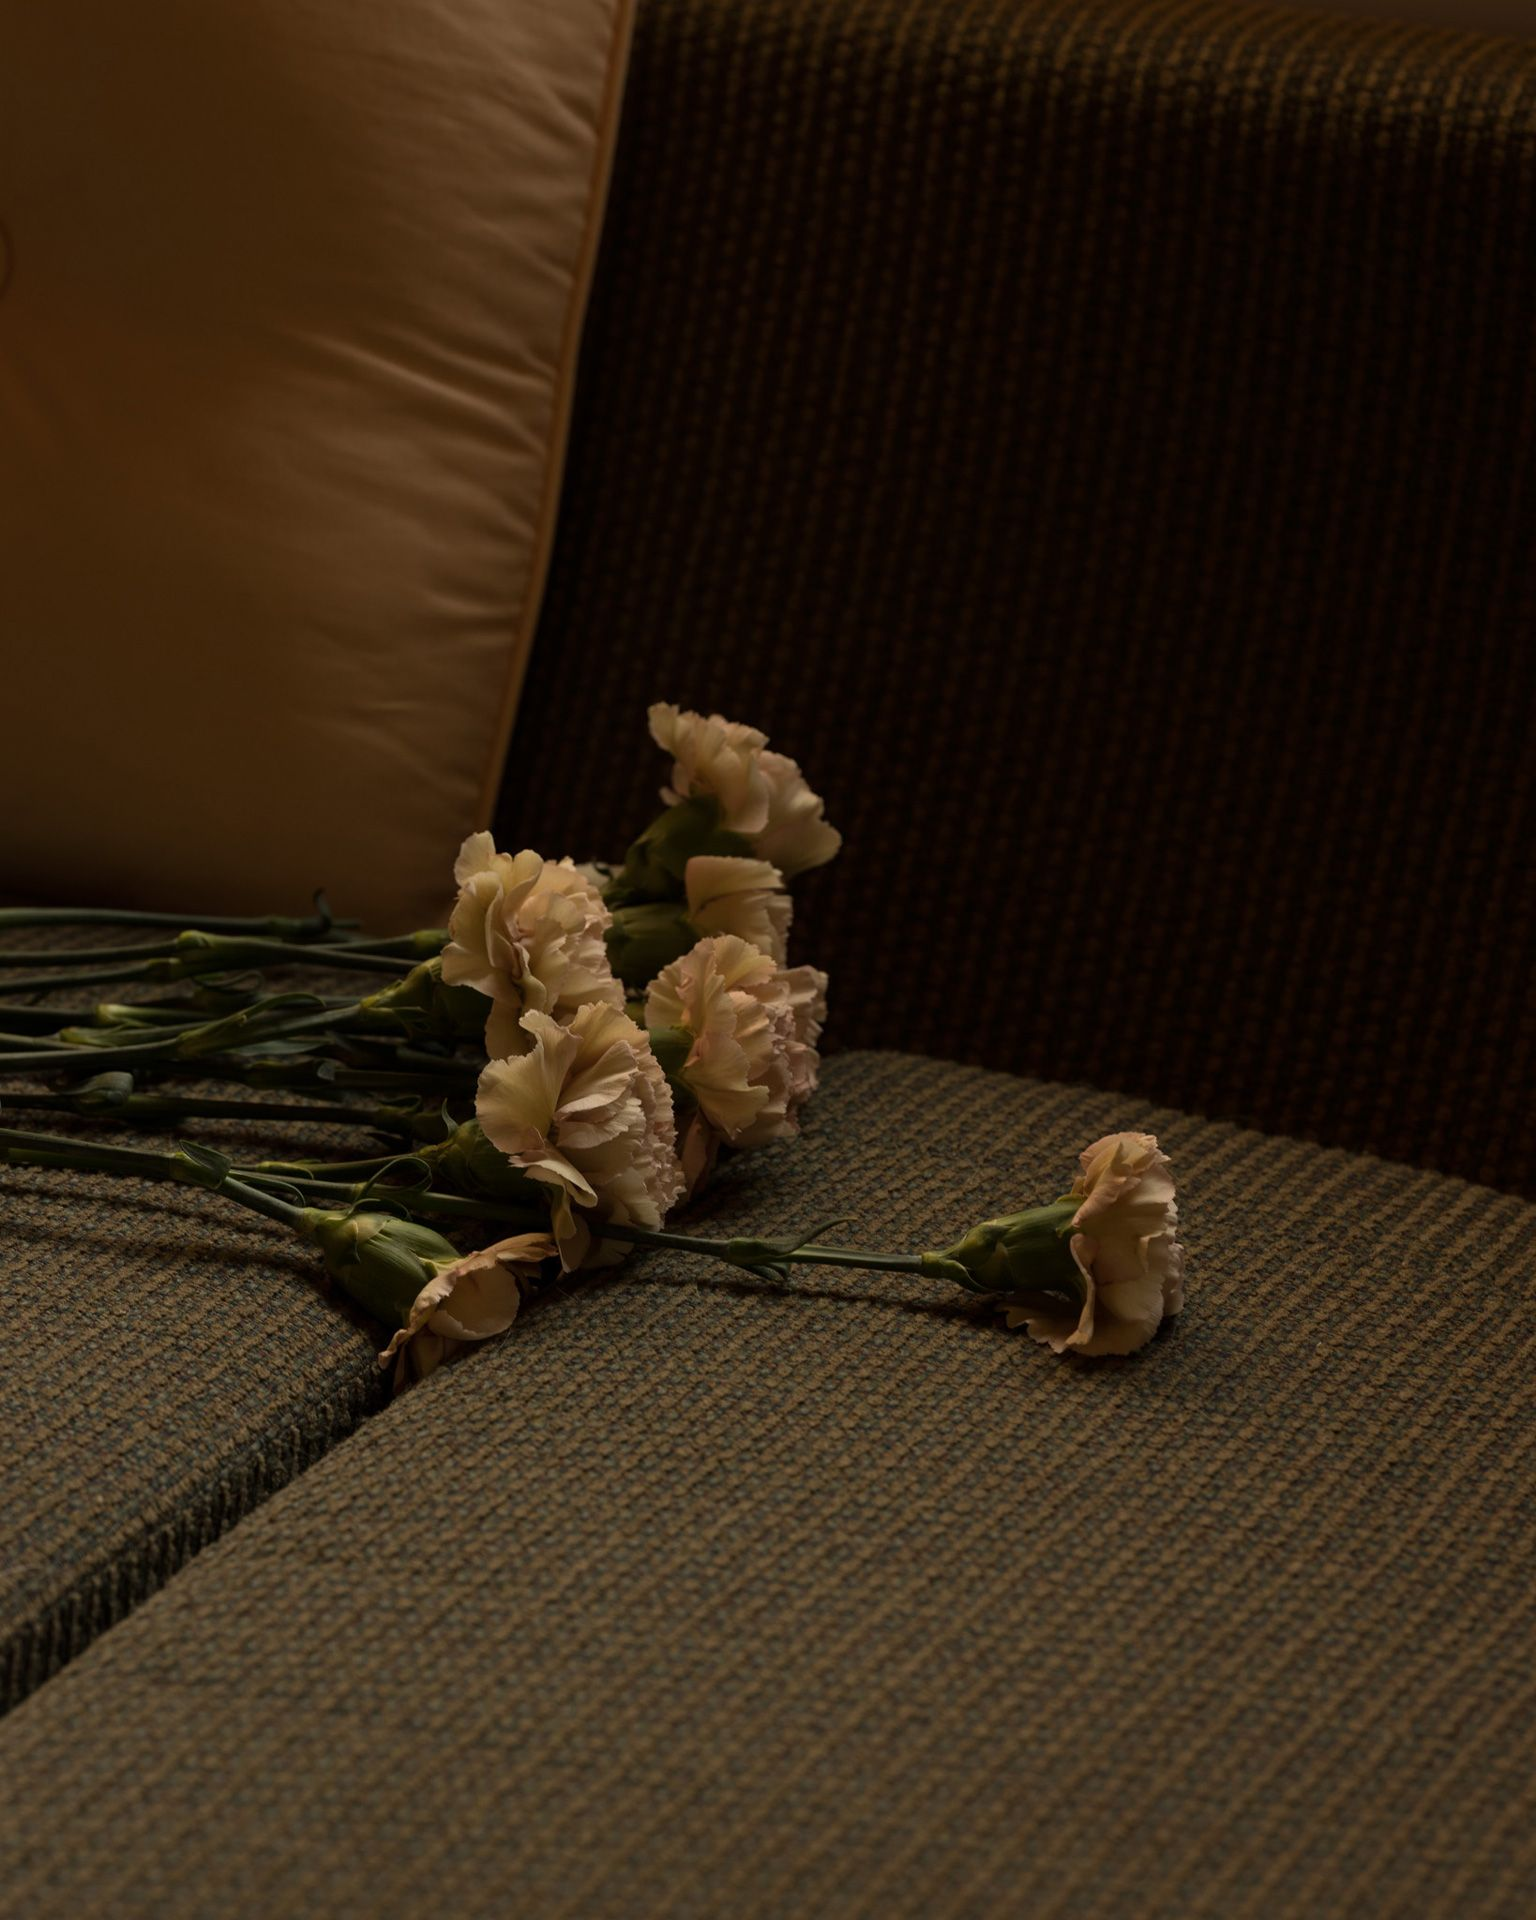 Fanny Bloom bouquet of white roses on a couch for her album Liqueur by Maxyme G. Delisle